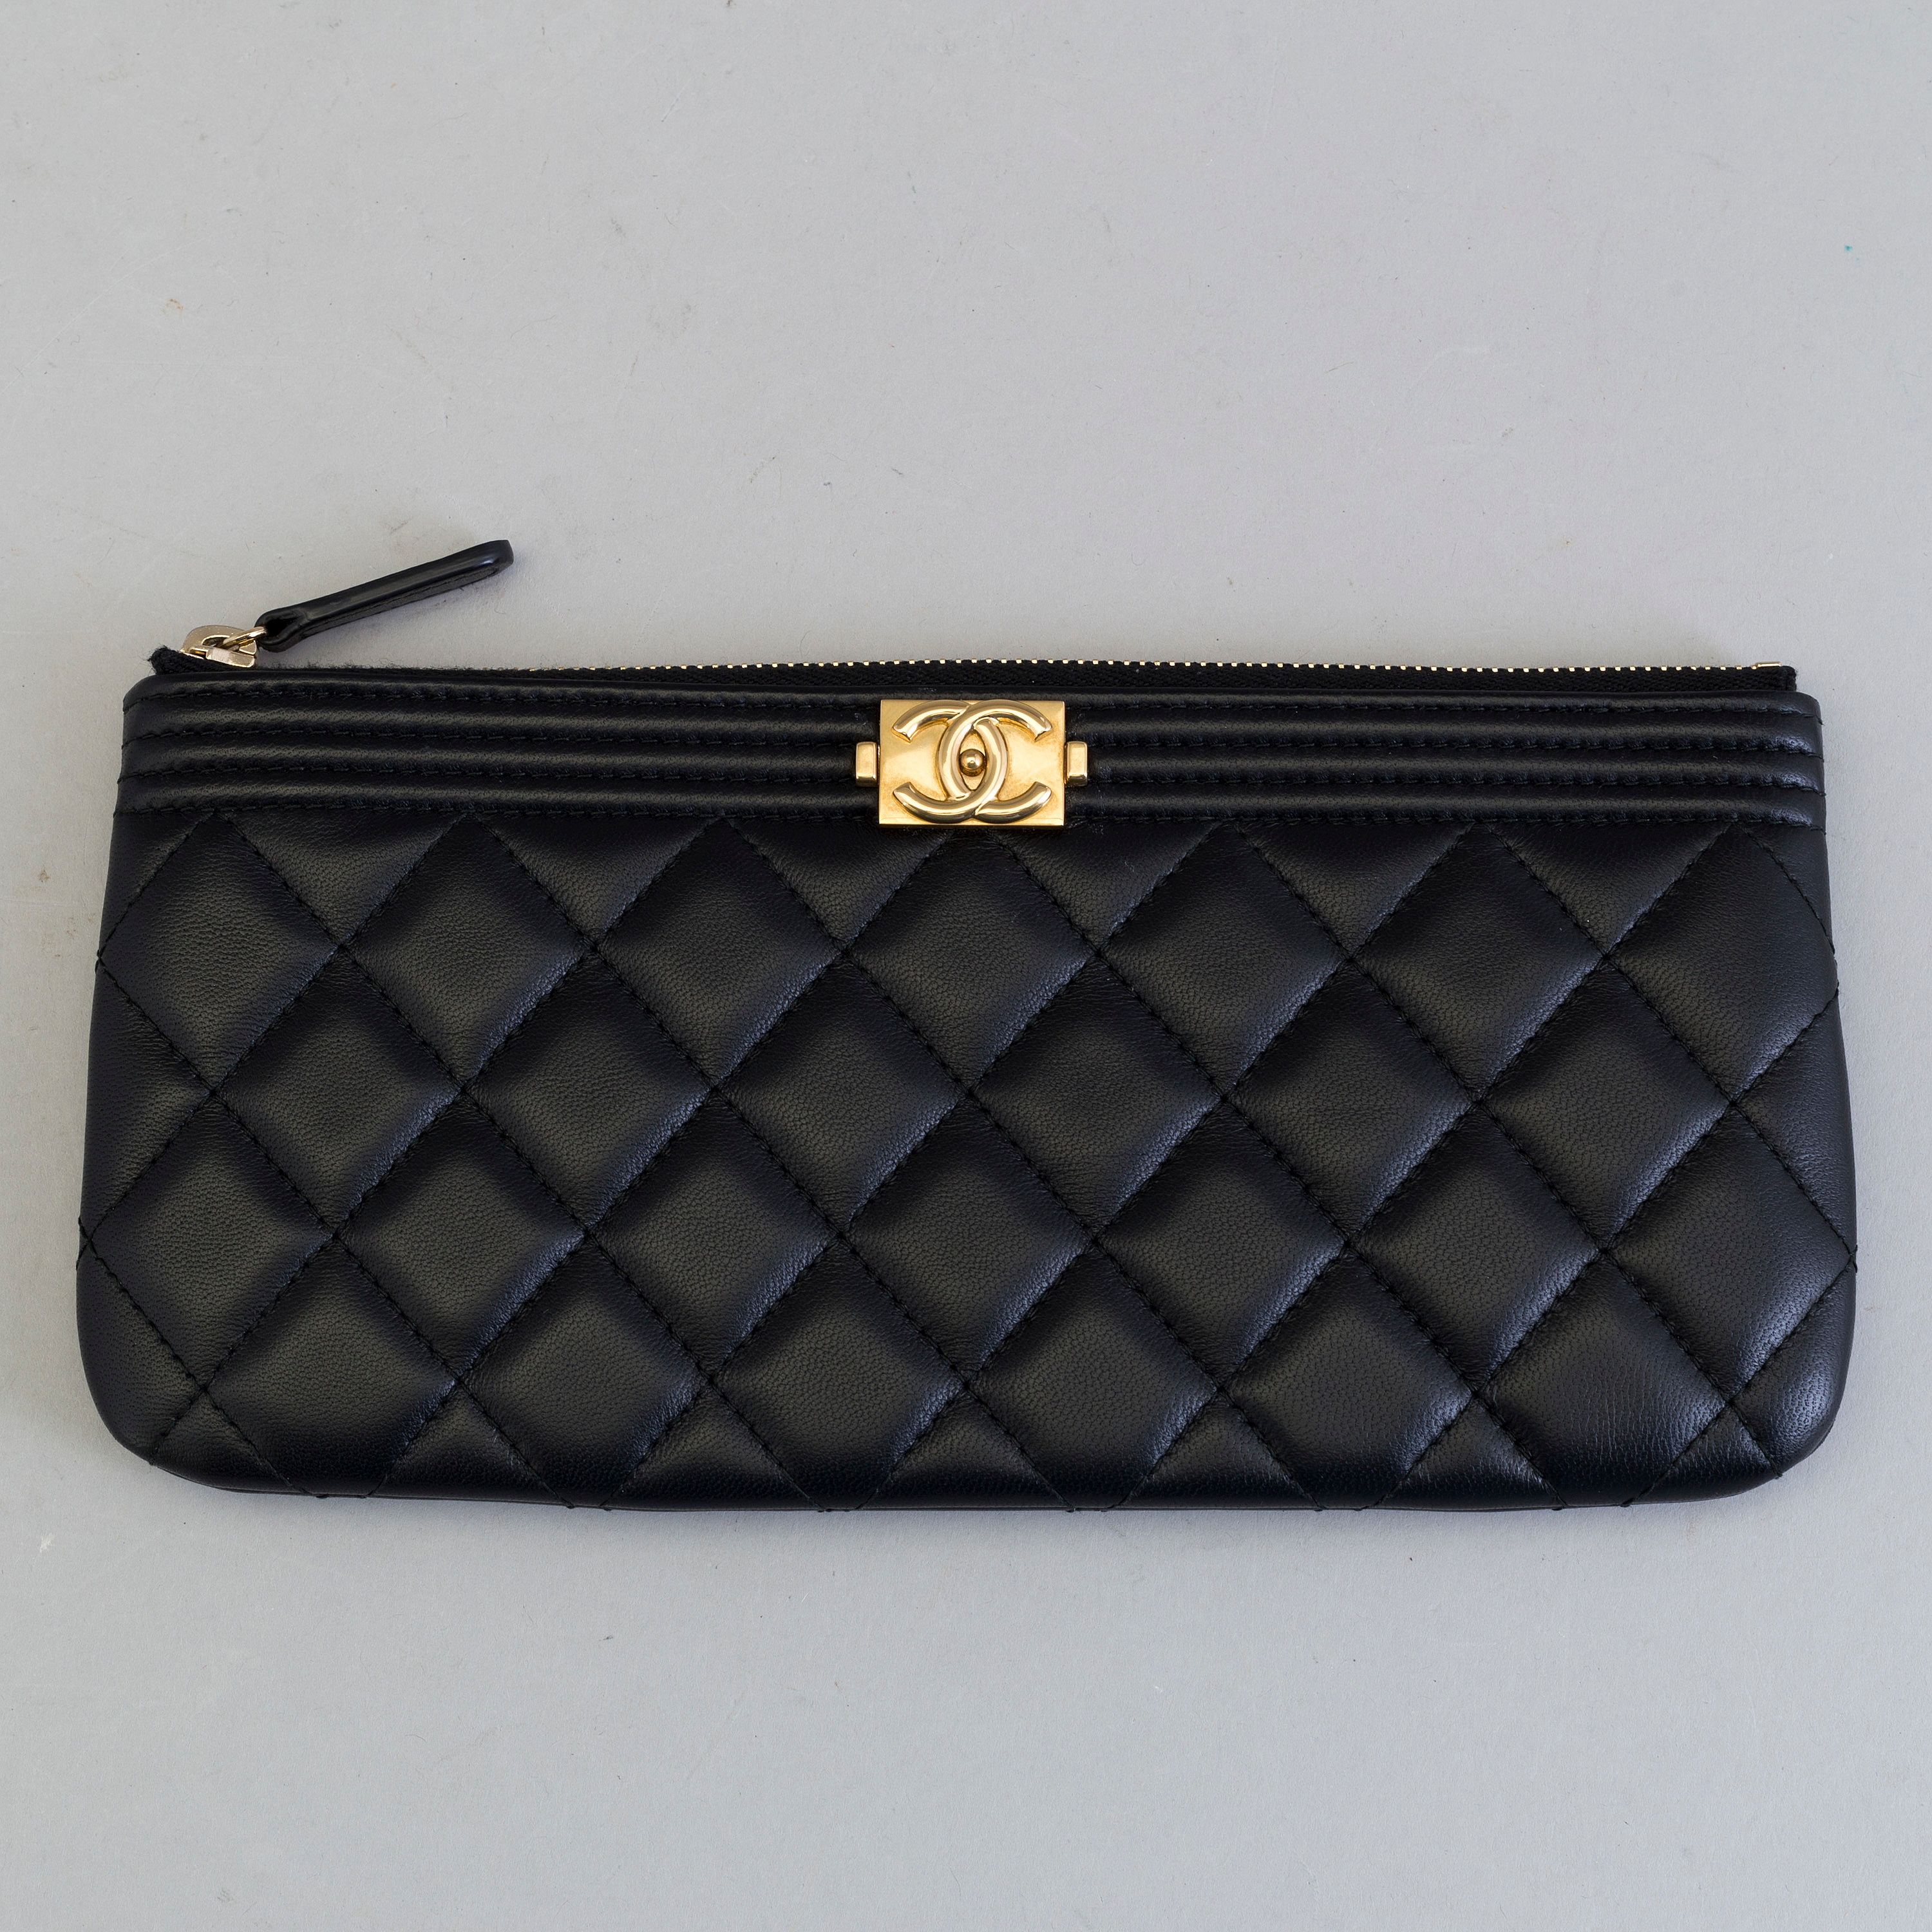 A LEATHER CLUTCH BAG by Chanel. - Bukowskis 3946d37a5ff6d